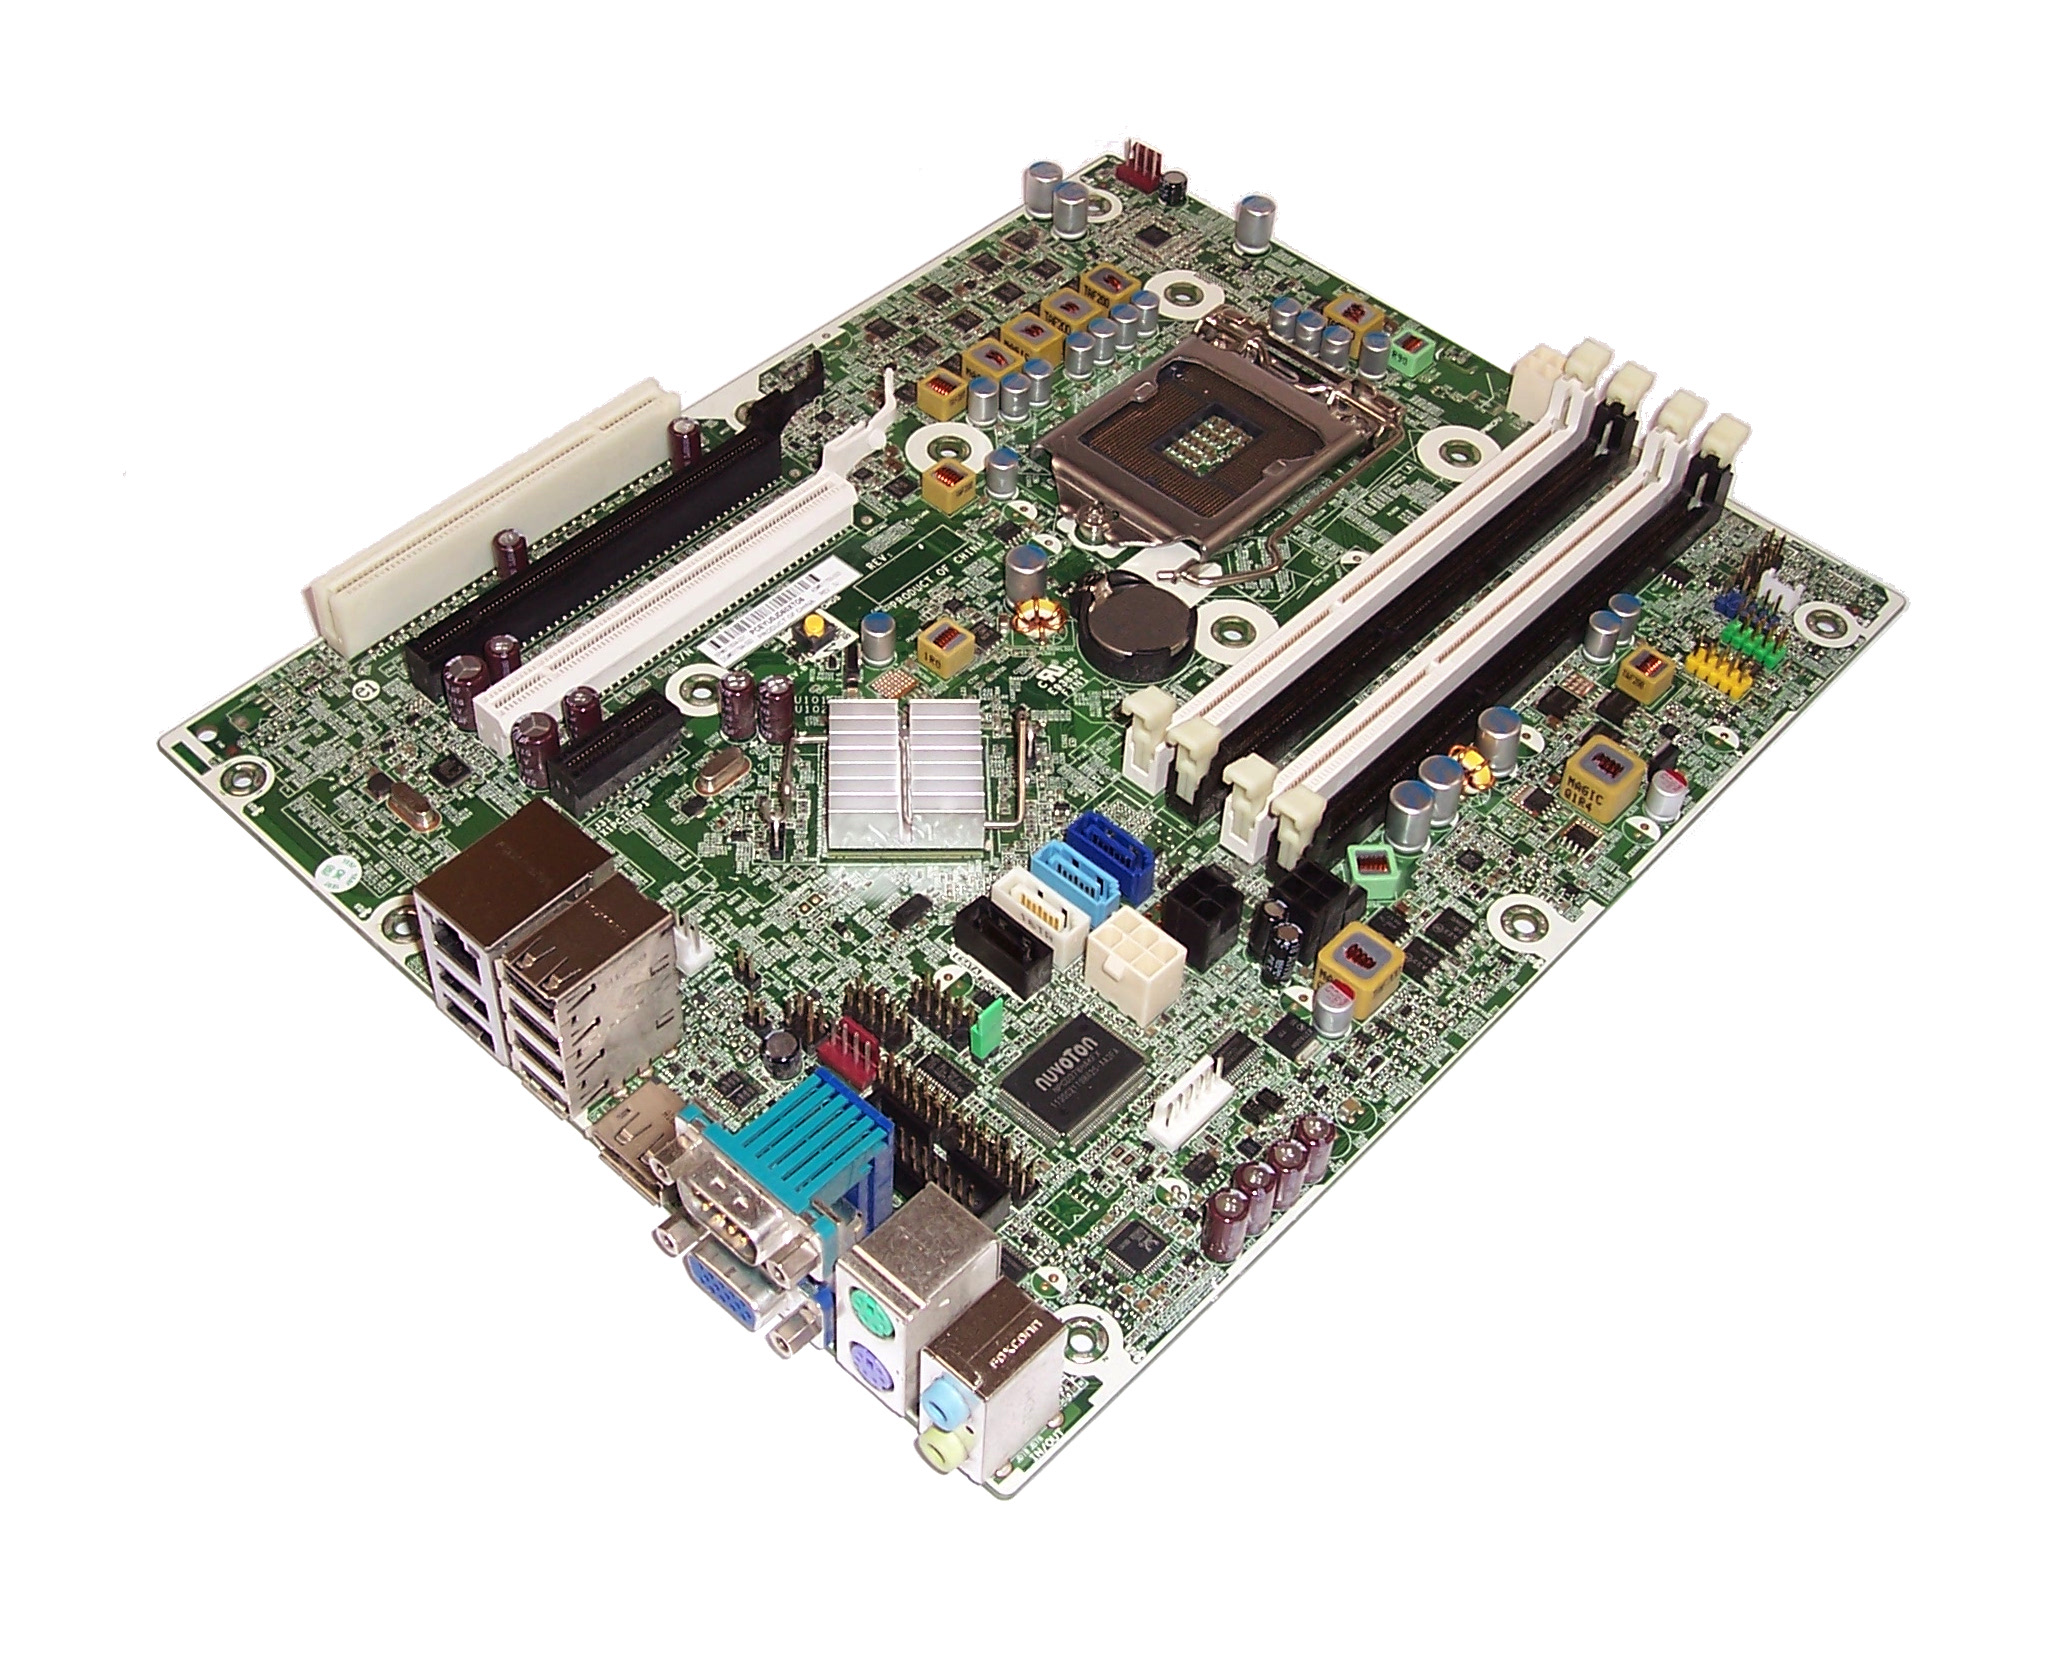 HP Compaq 611834-001 8200 Elite SFF Socket H2 (LGA1155) Motherboard - 611793-002